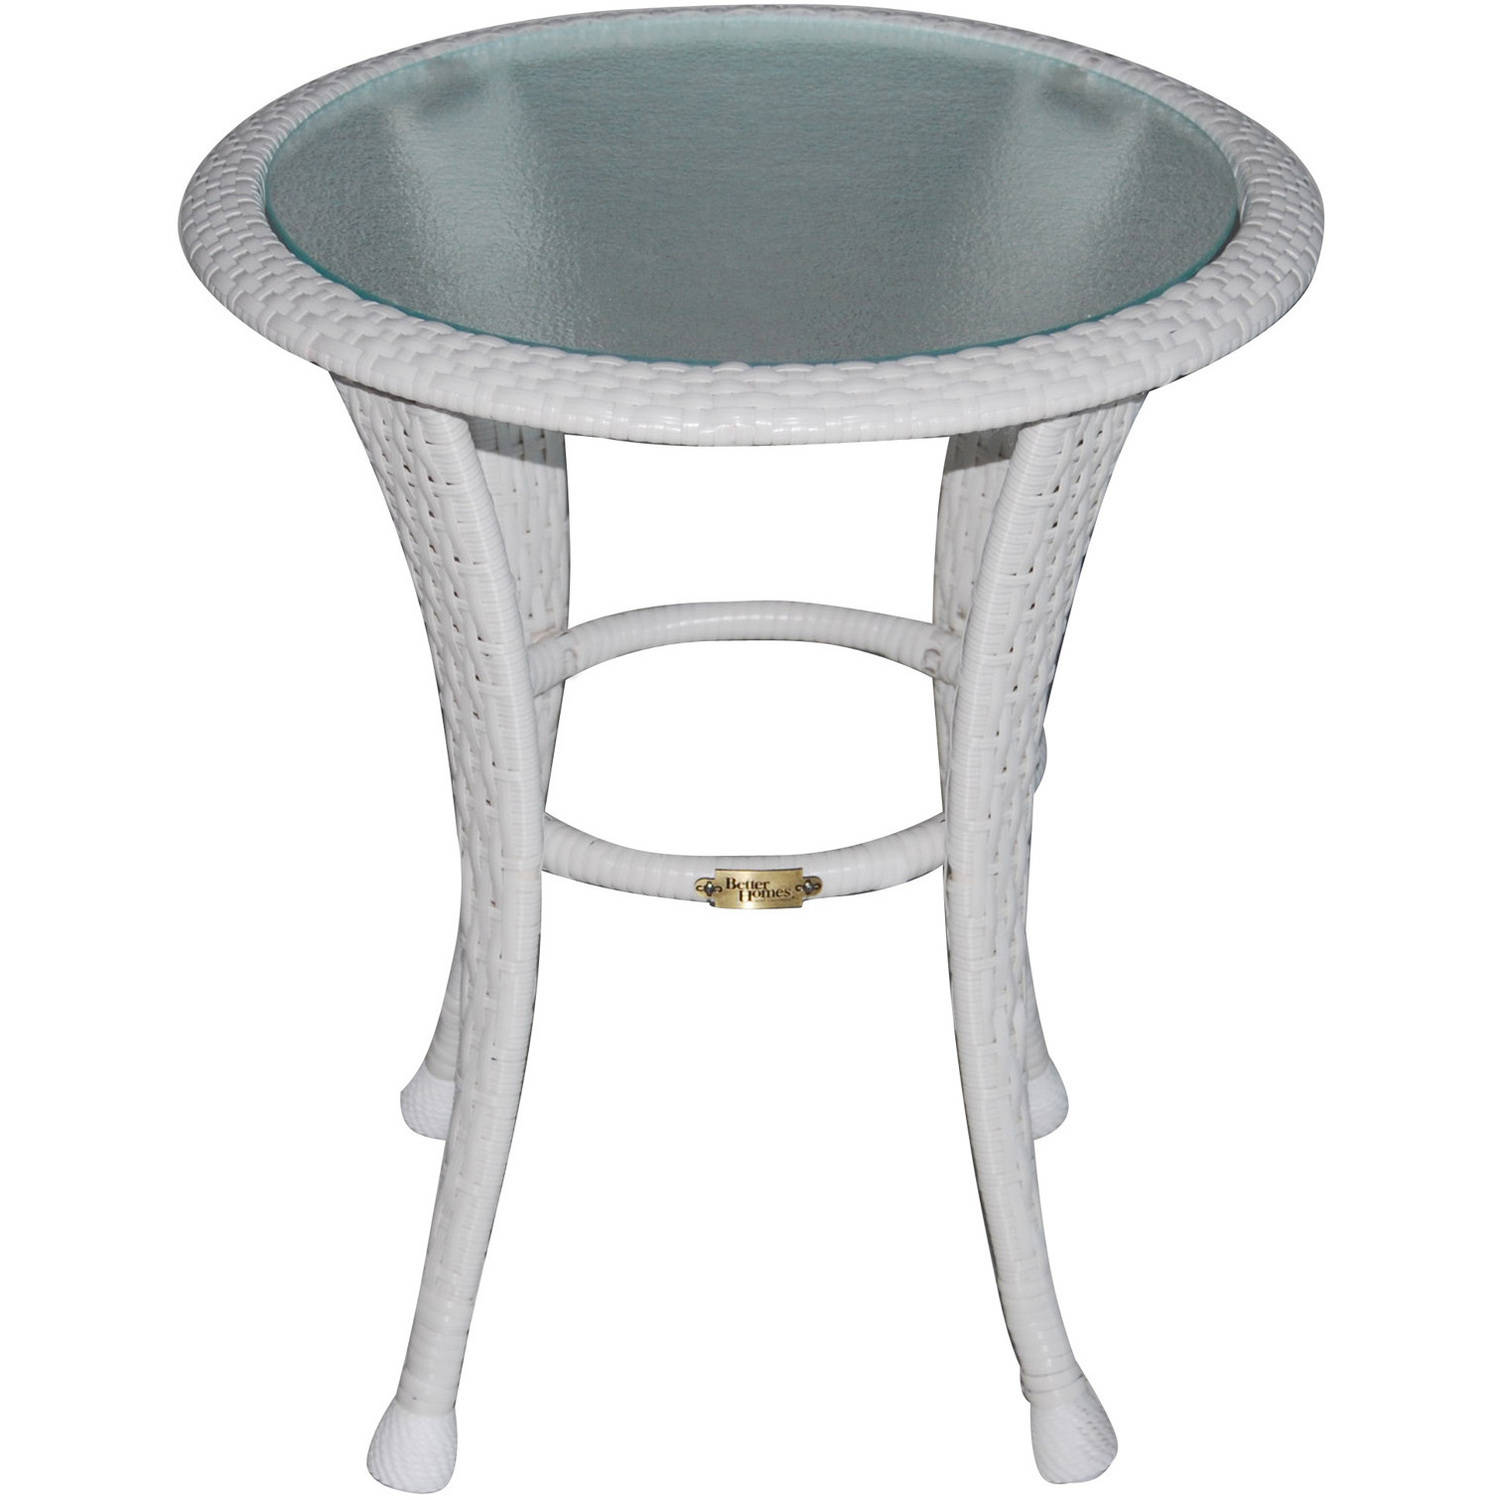 the outrageous unbelievable plastic patio end tables jockboymusic white table with umbrella hole ideas outstanding furniture for balcony and chairs top coffee antique side styles